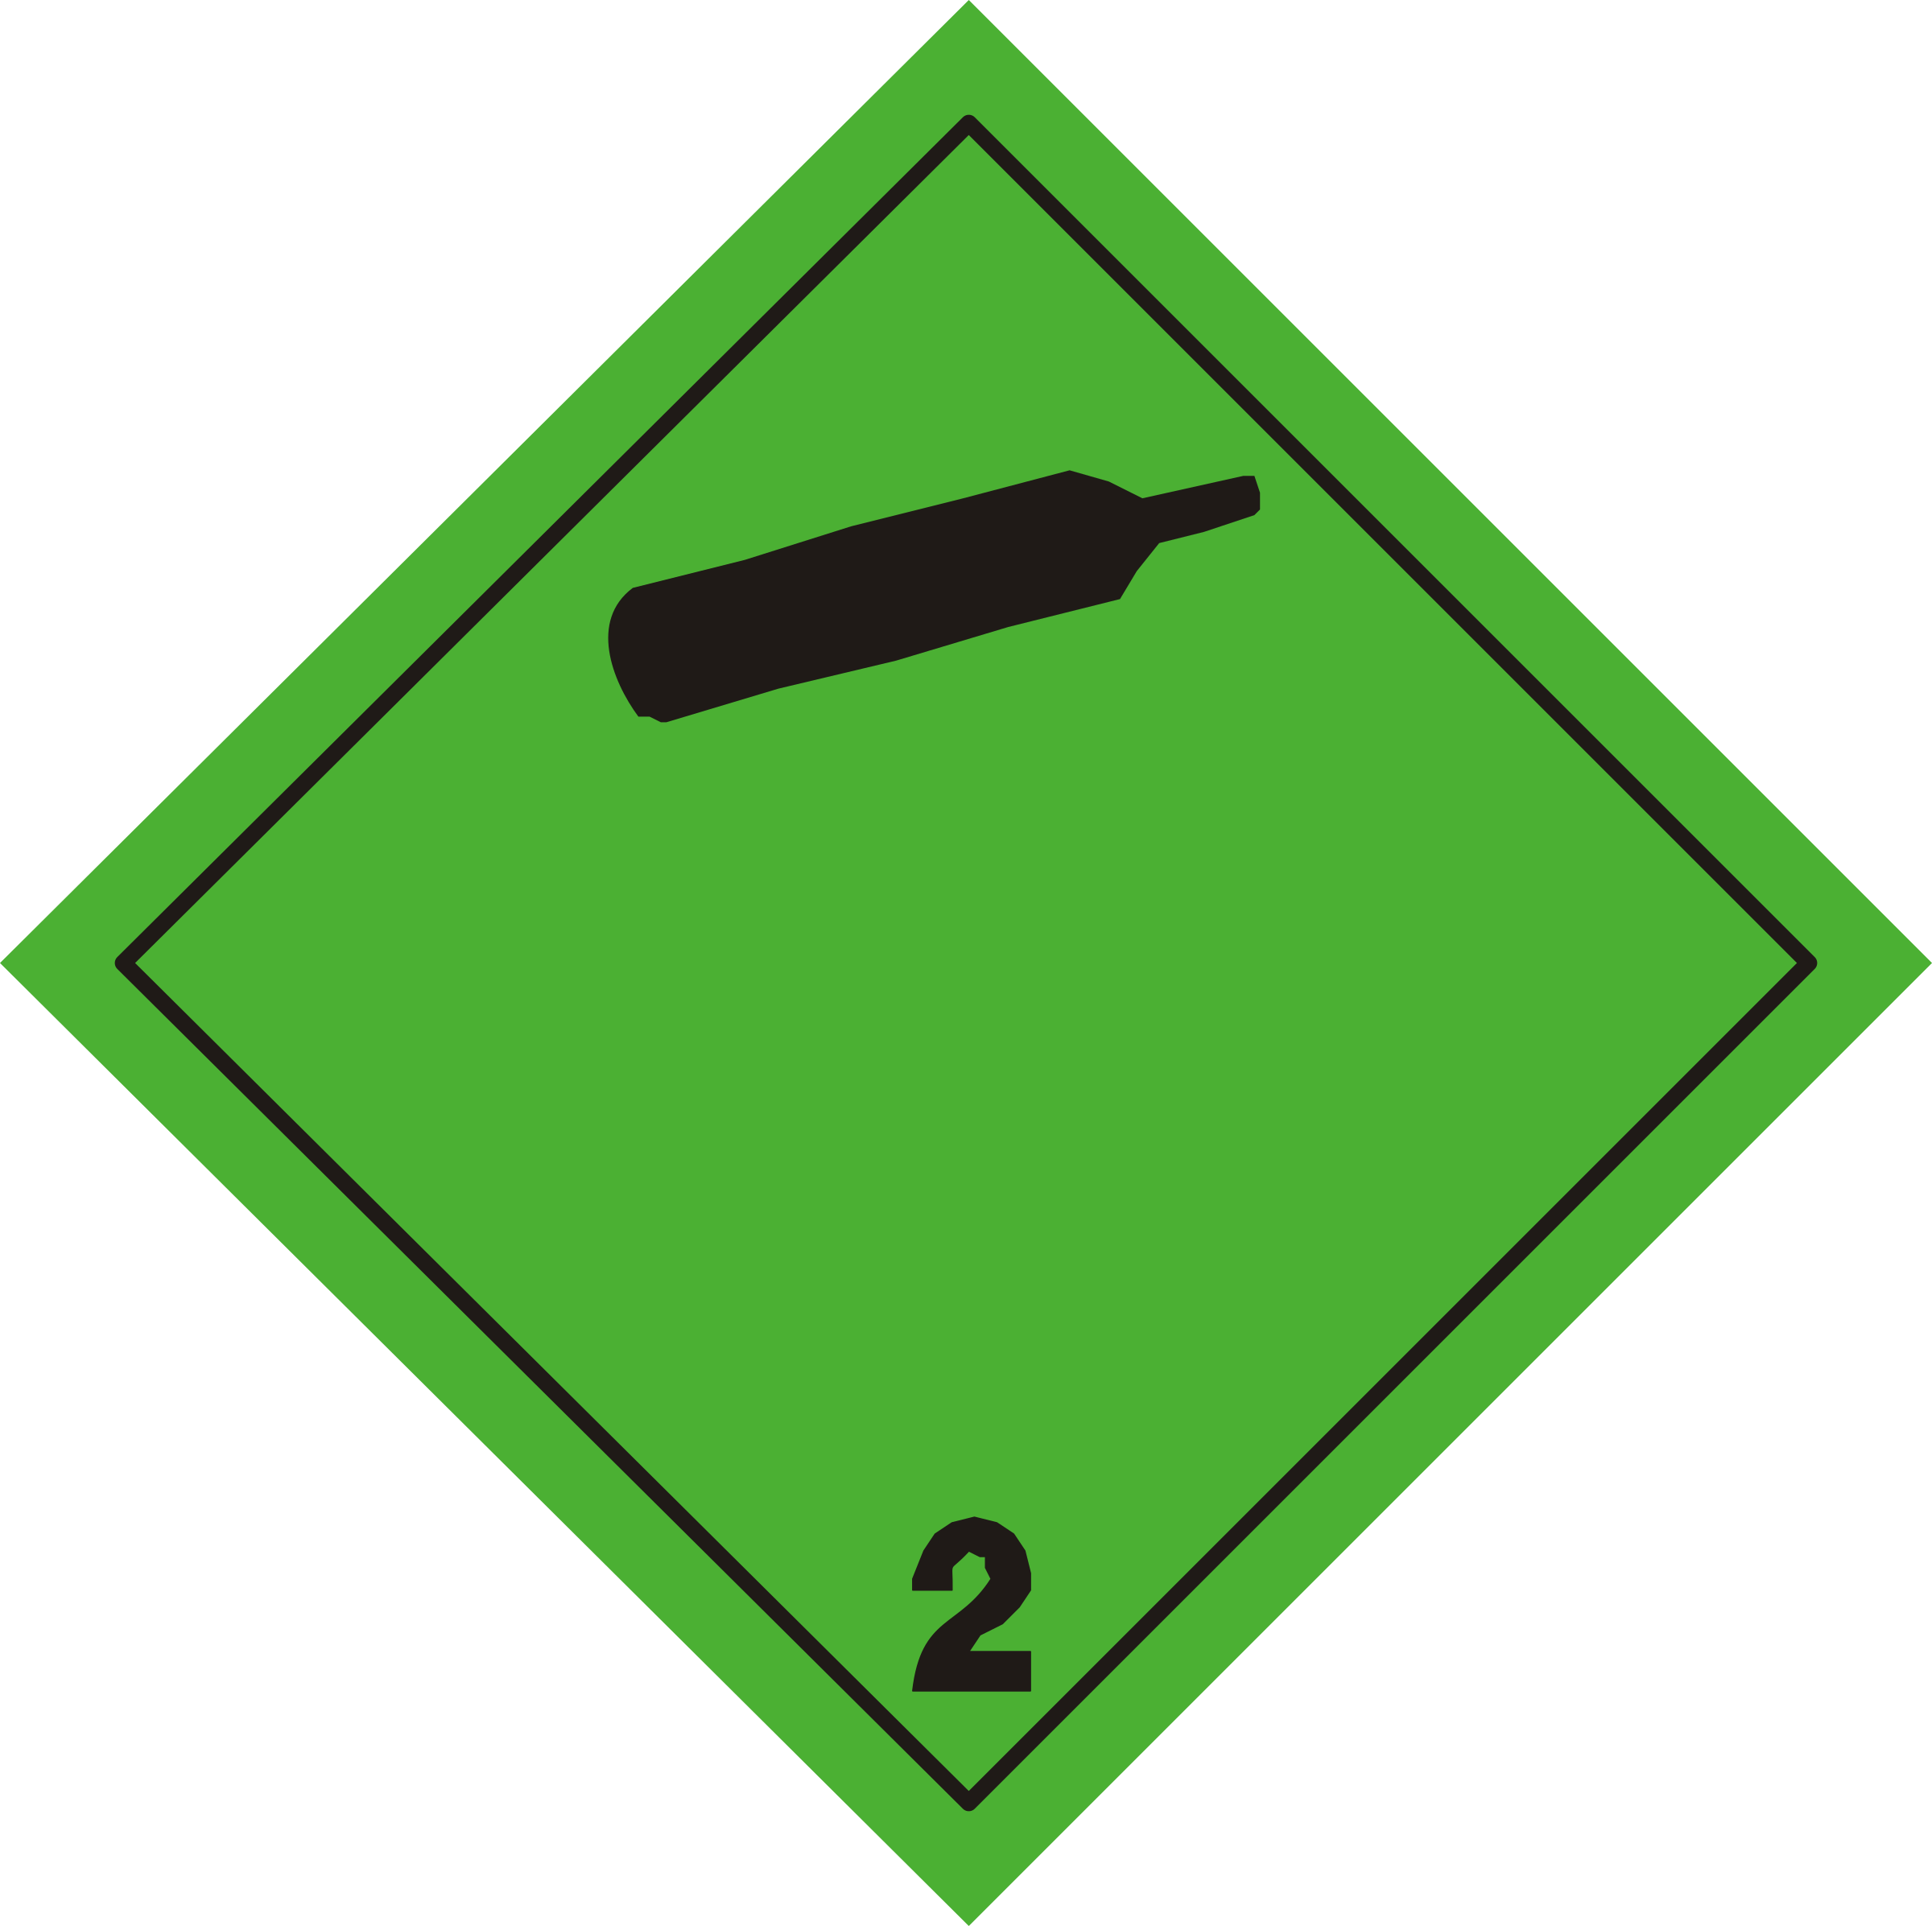 ADR pictogram 2.2-Non-toxic and non-flammable gases by Juhele